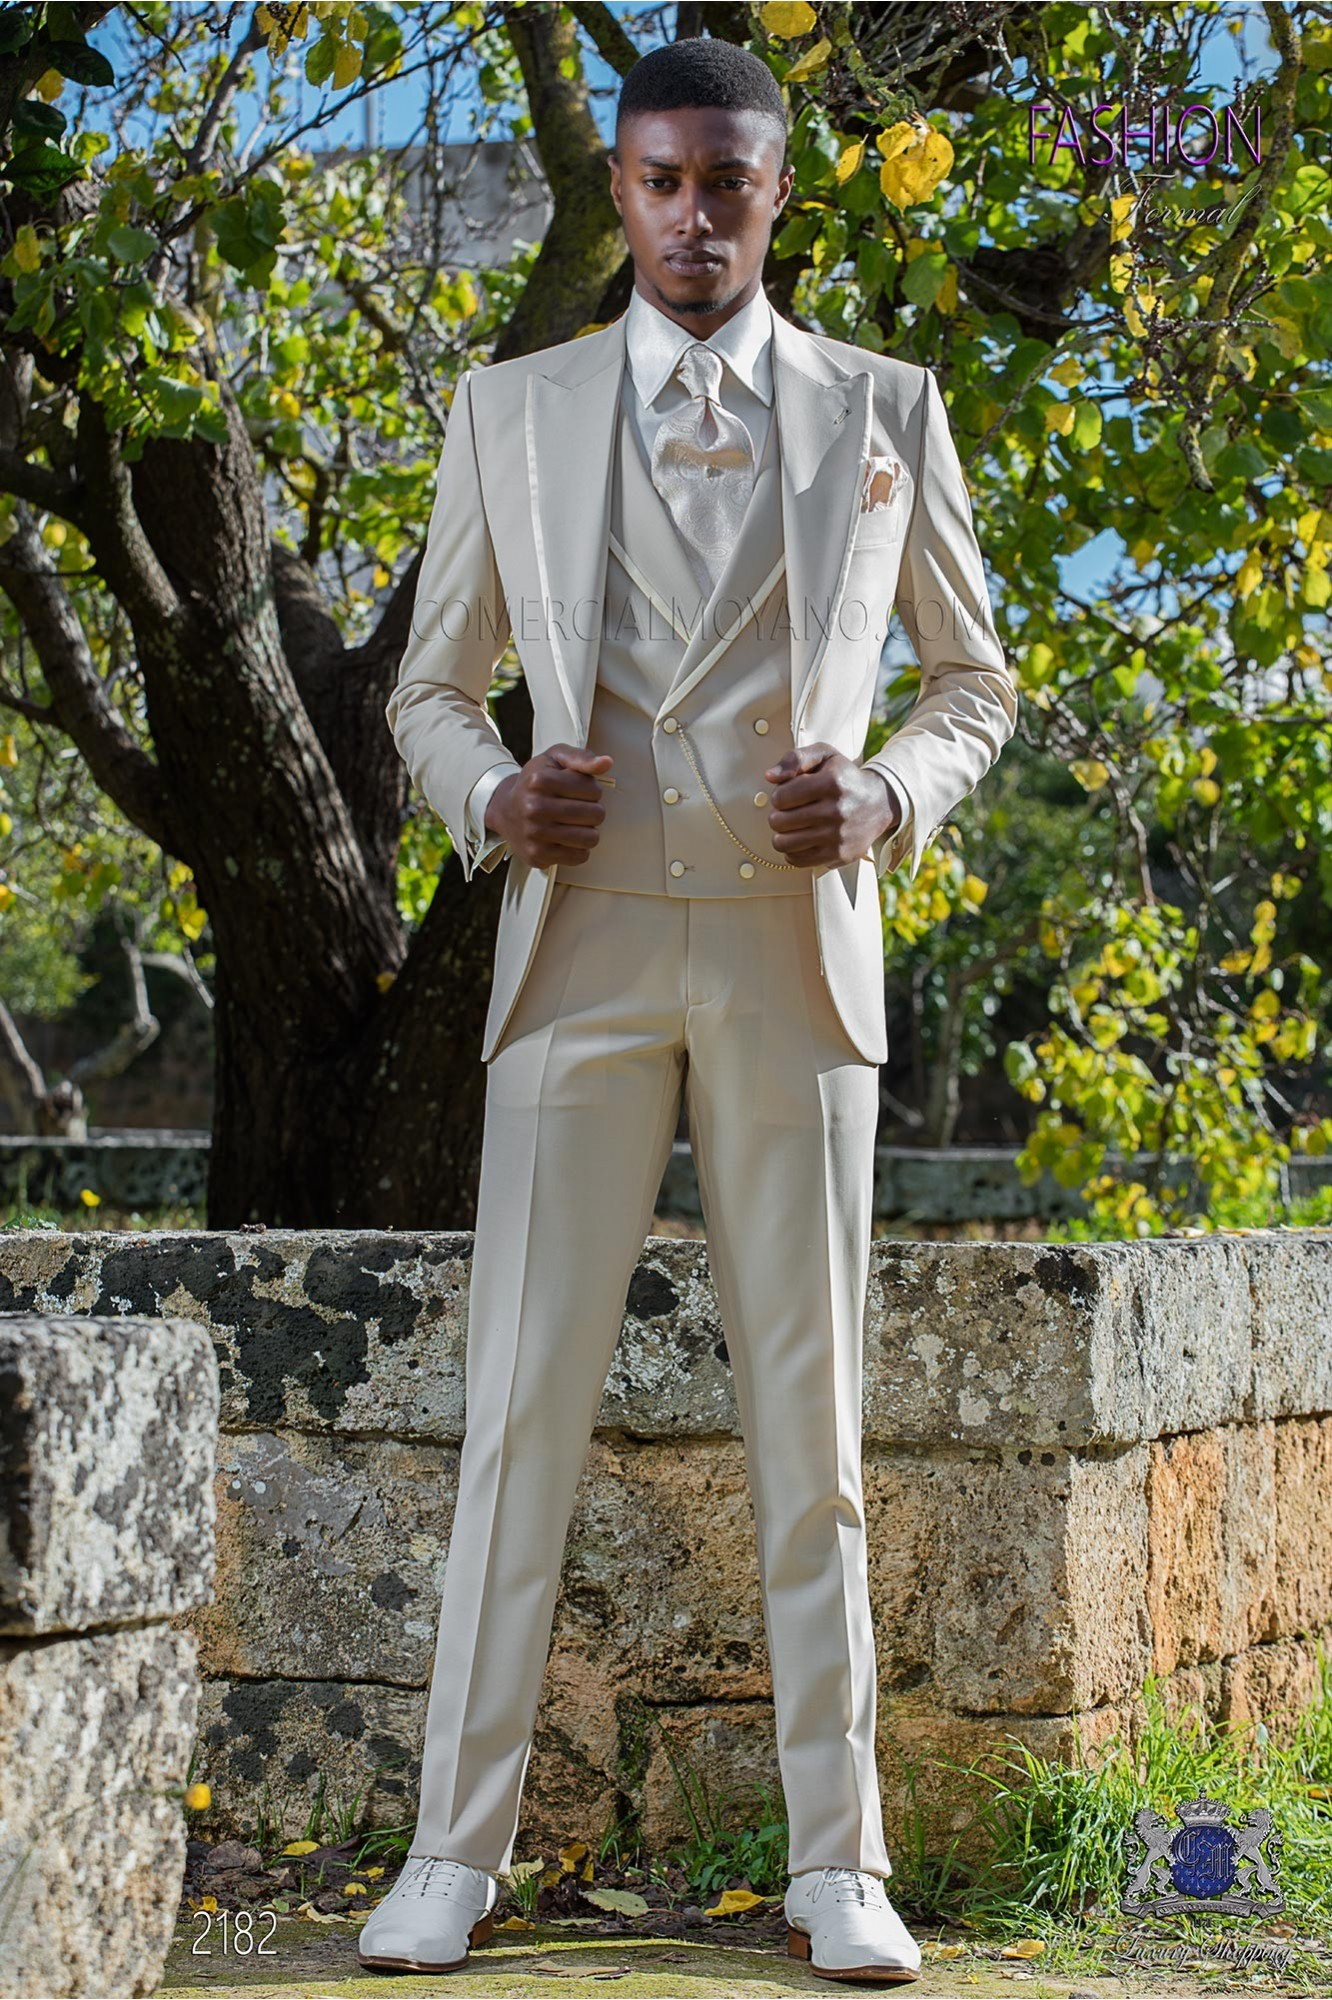 Italian bespoke suit beige cool wool mix model 2182 Ottavio Nuccio Gala